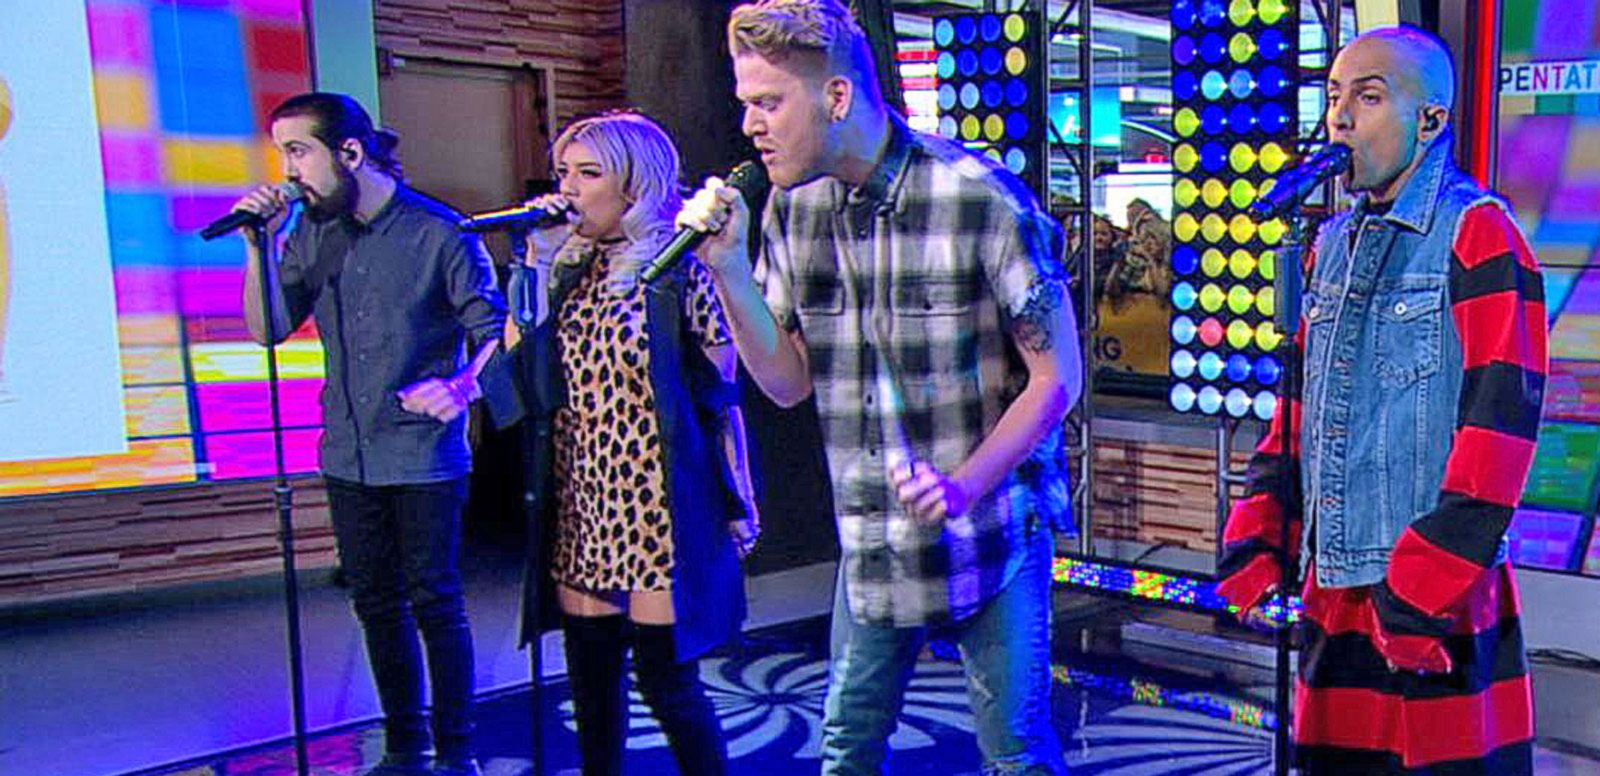 VIDEO: Pentatonix Performs 'Cracked'